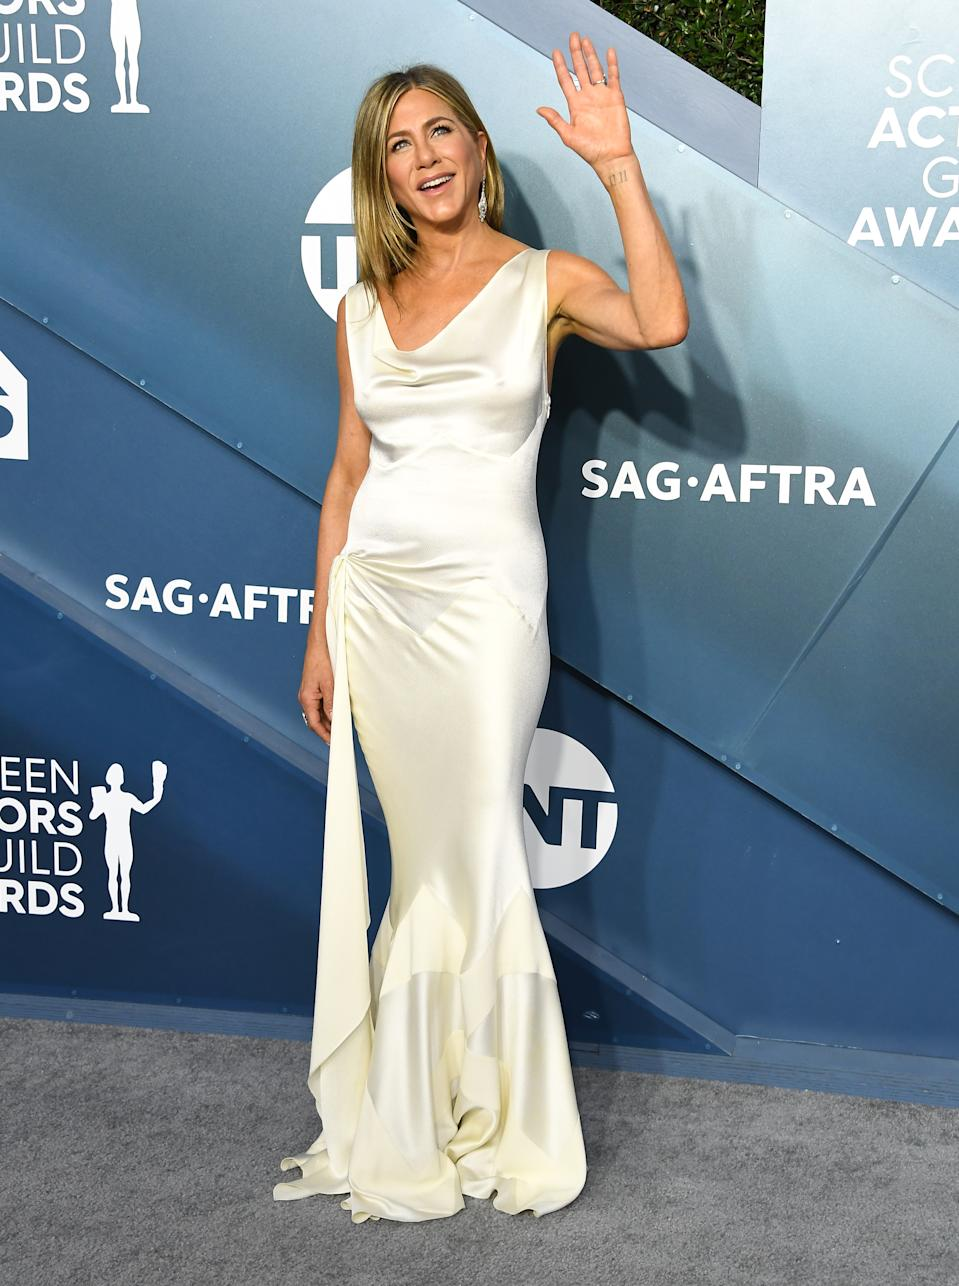 Jennifer Aniston's figure hugging Dior gown was the a red carpet hit at the 2020 Screen Actors Guild Awards.